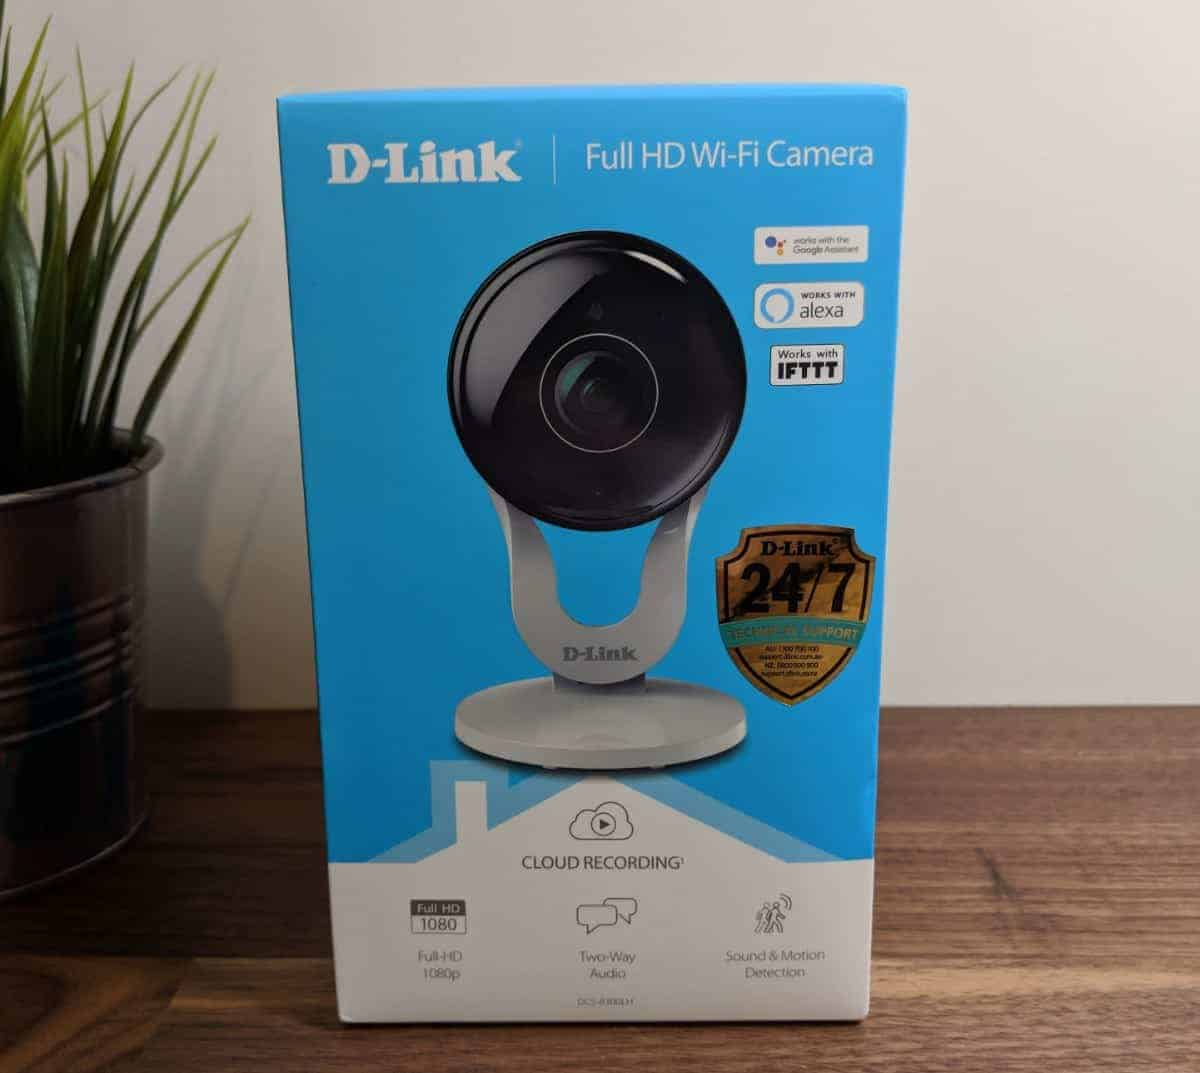 D-Link DCS-8300LH Wi-Fi Camera Review - The Streaming Blog